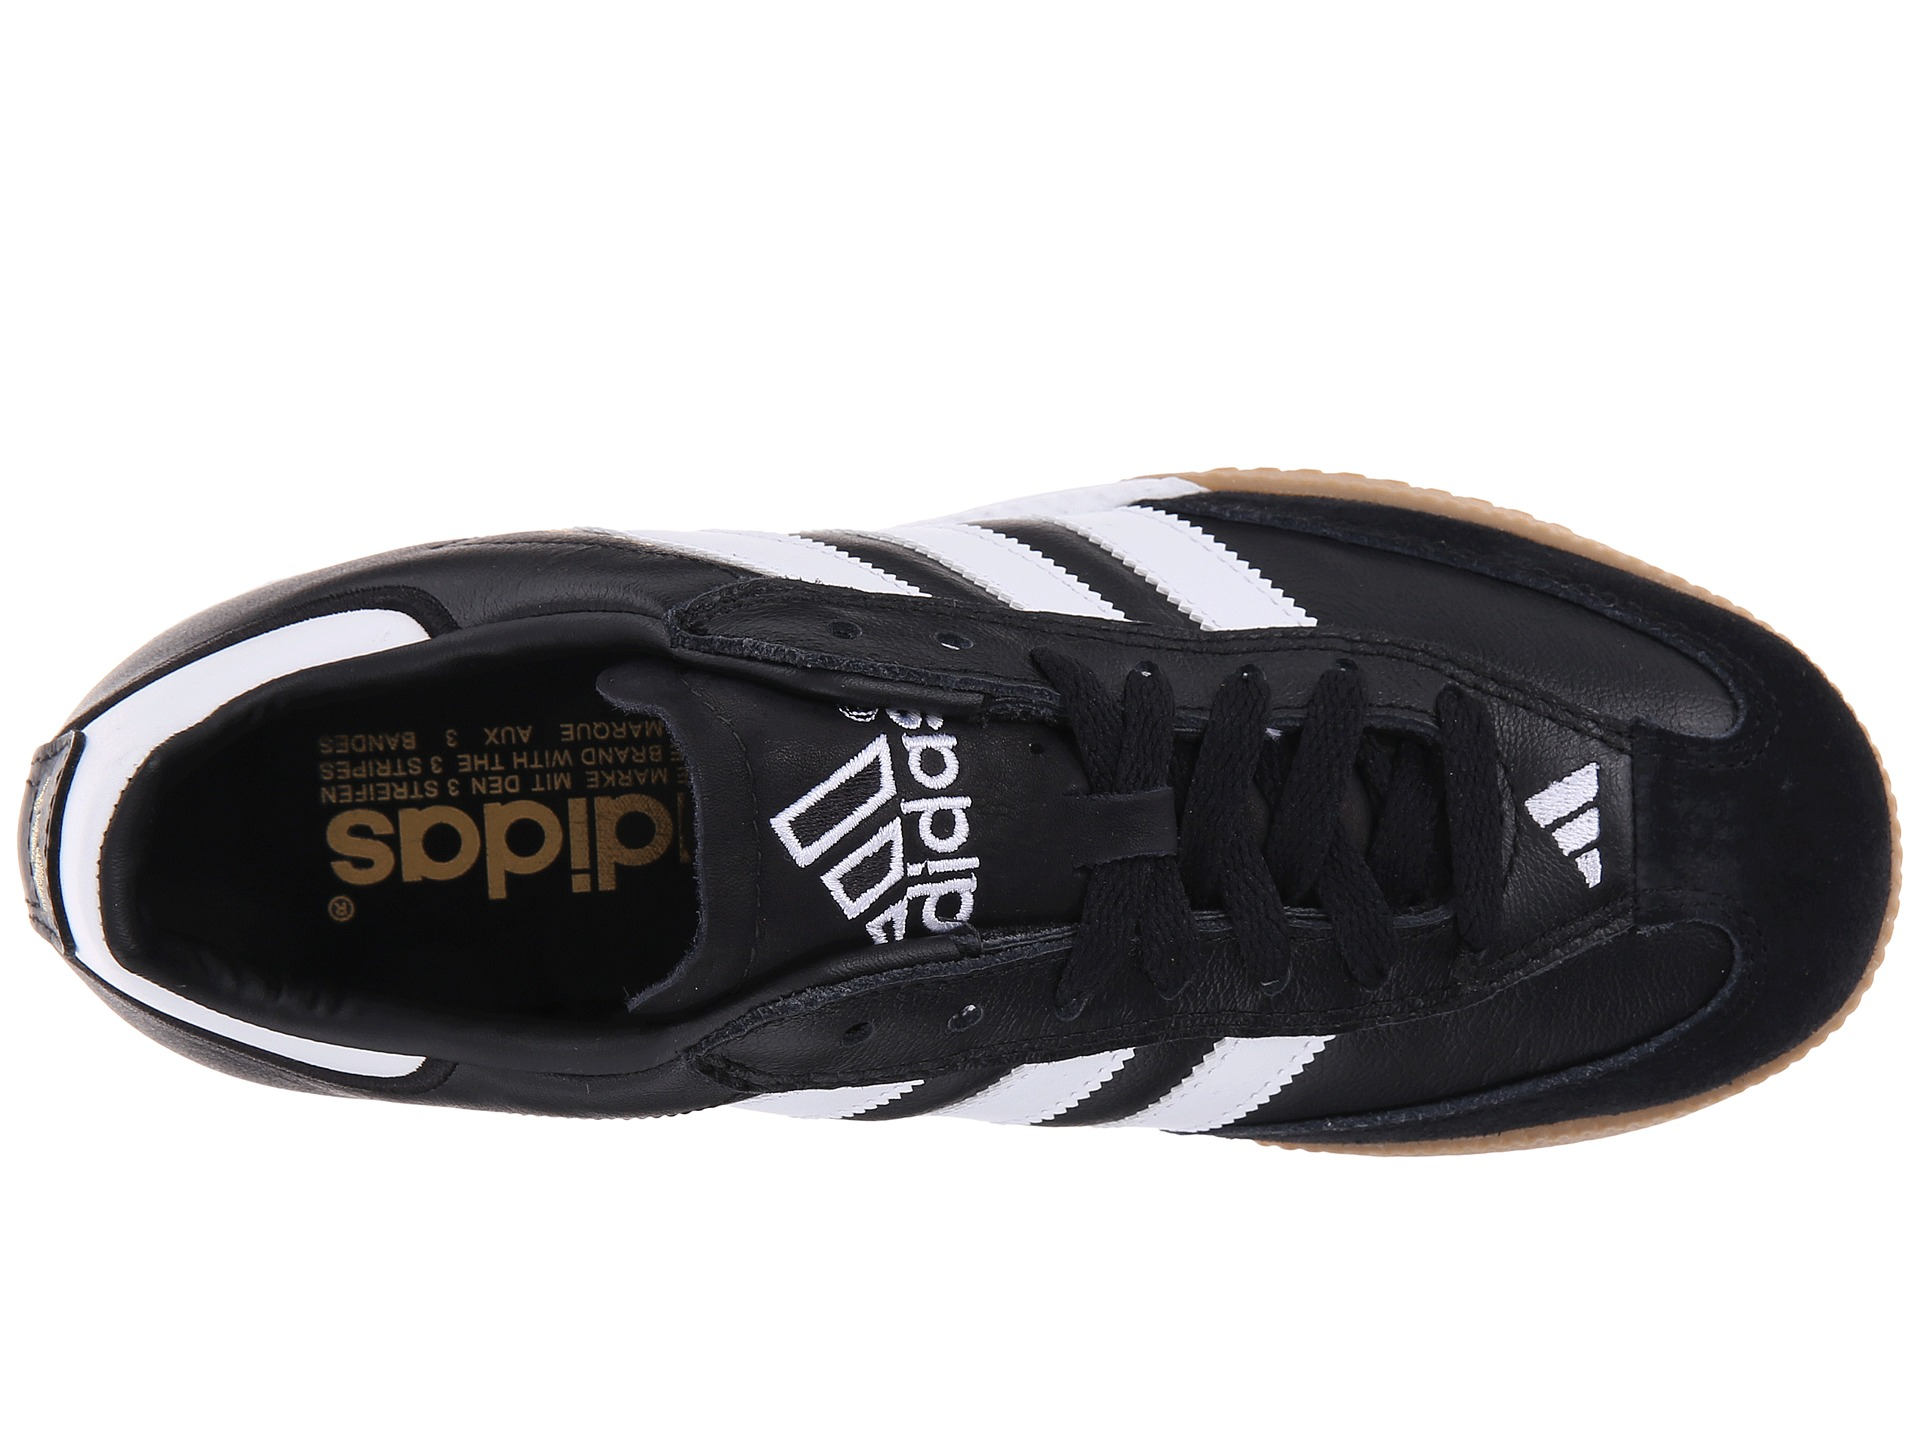 adedce1600 Buy adidas samba womens indoor soccer shoes   OFF63% Discounted